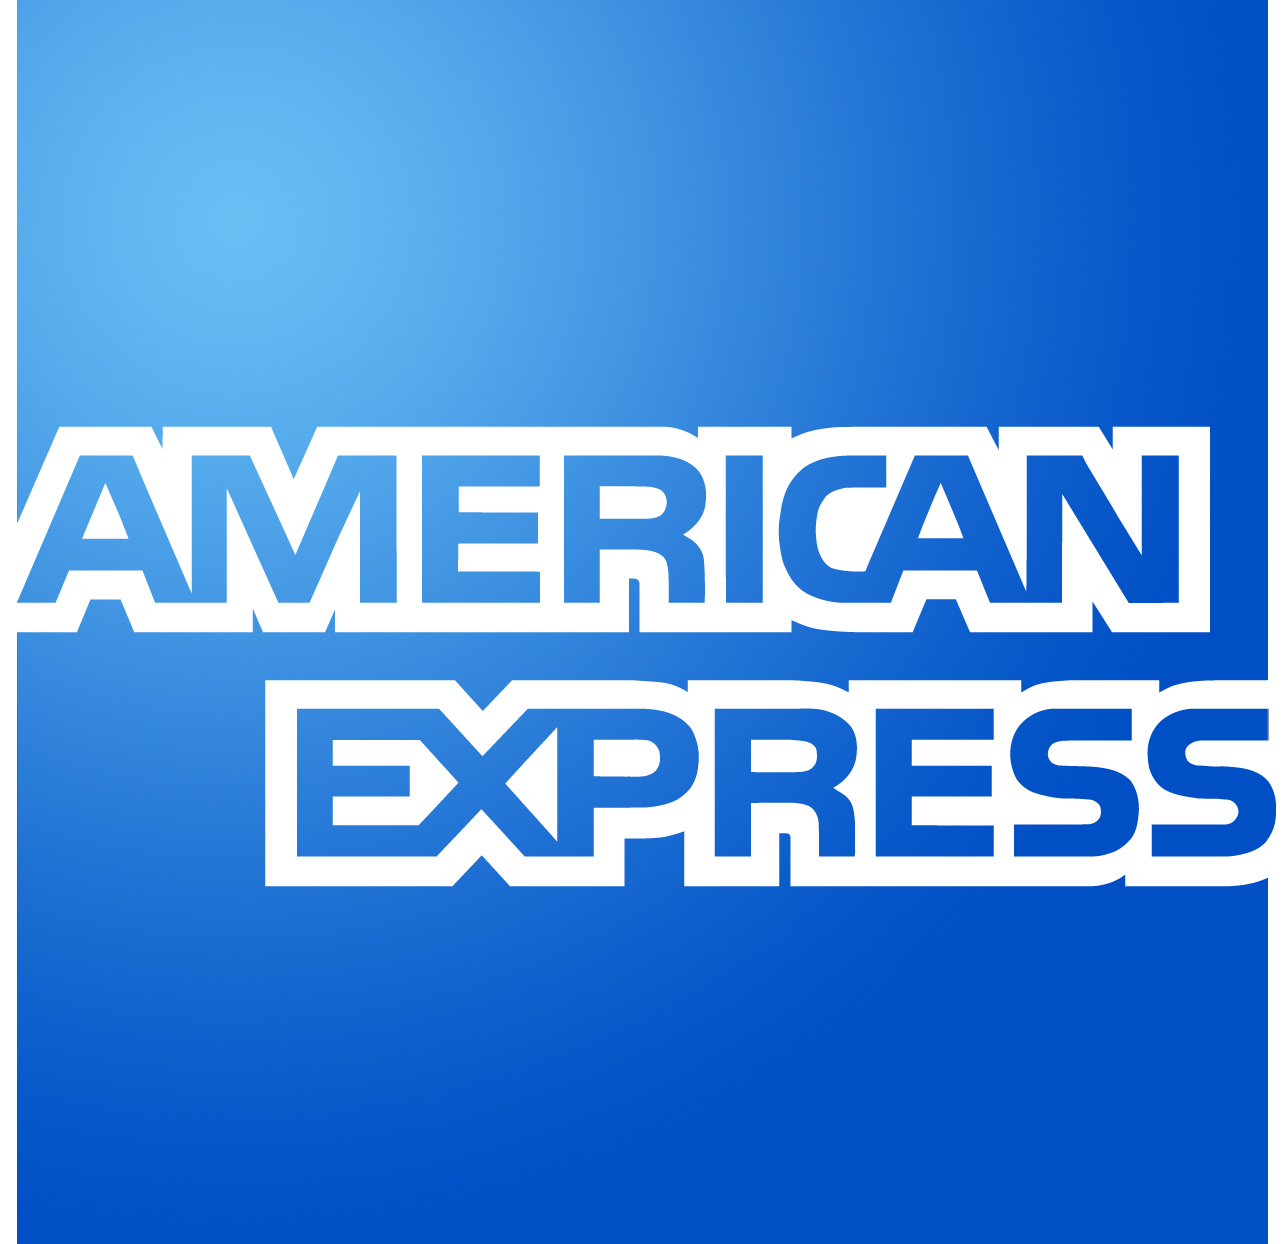 Amex Express Checkout >> #ShopSmall with American Express and Aurora Fireworks 1-31st July 2013 £5 back for every £10 ...